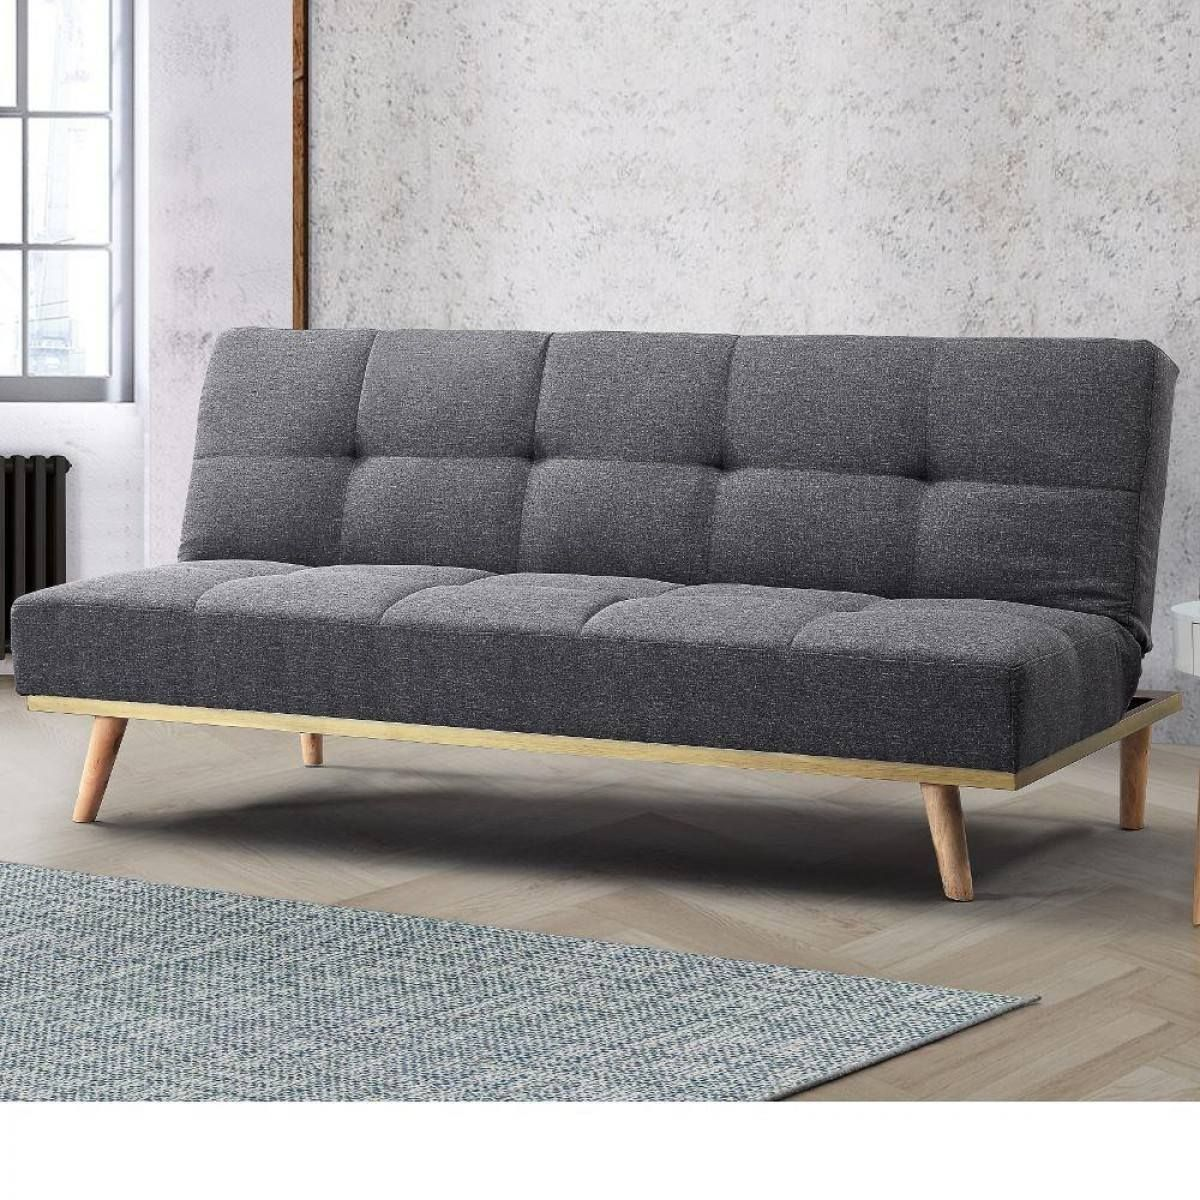 Snug Grey Fabric Sofa Bed Sofa Bed For Small Spaces Fabric Sofa Bed Sofa Bed Guest Room